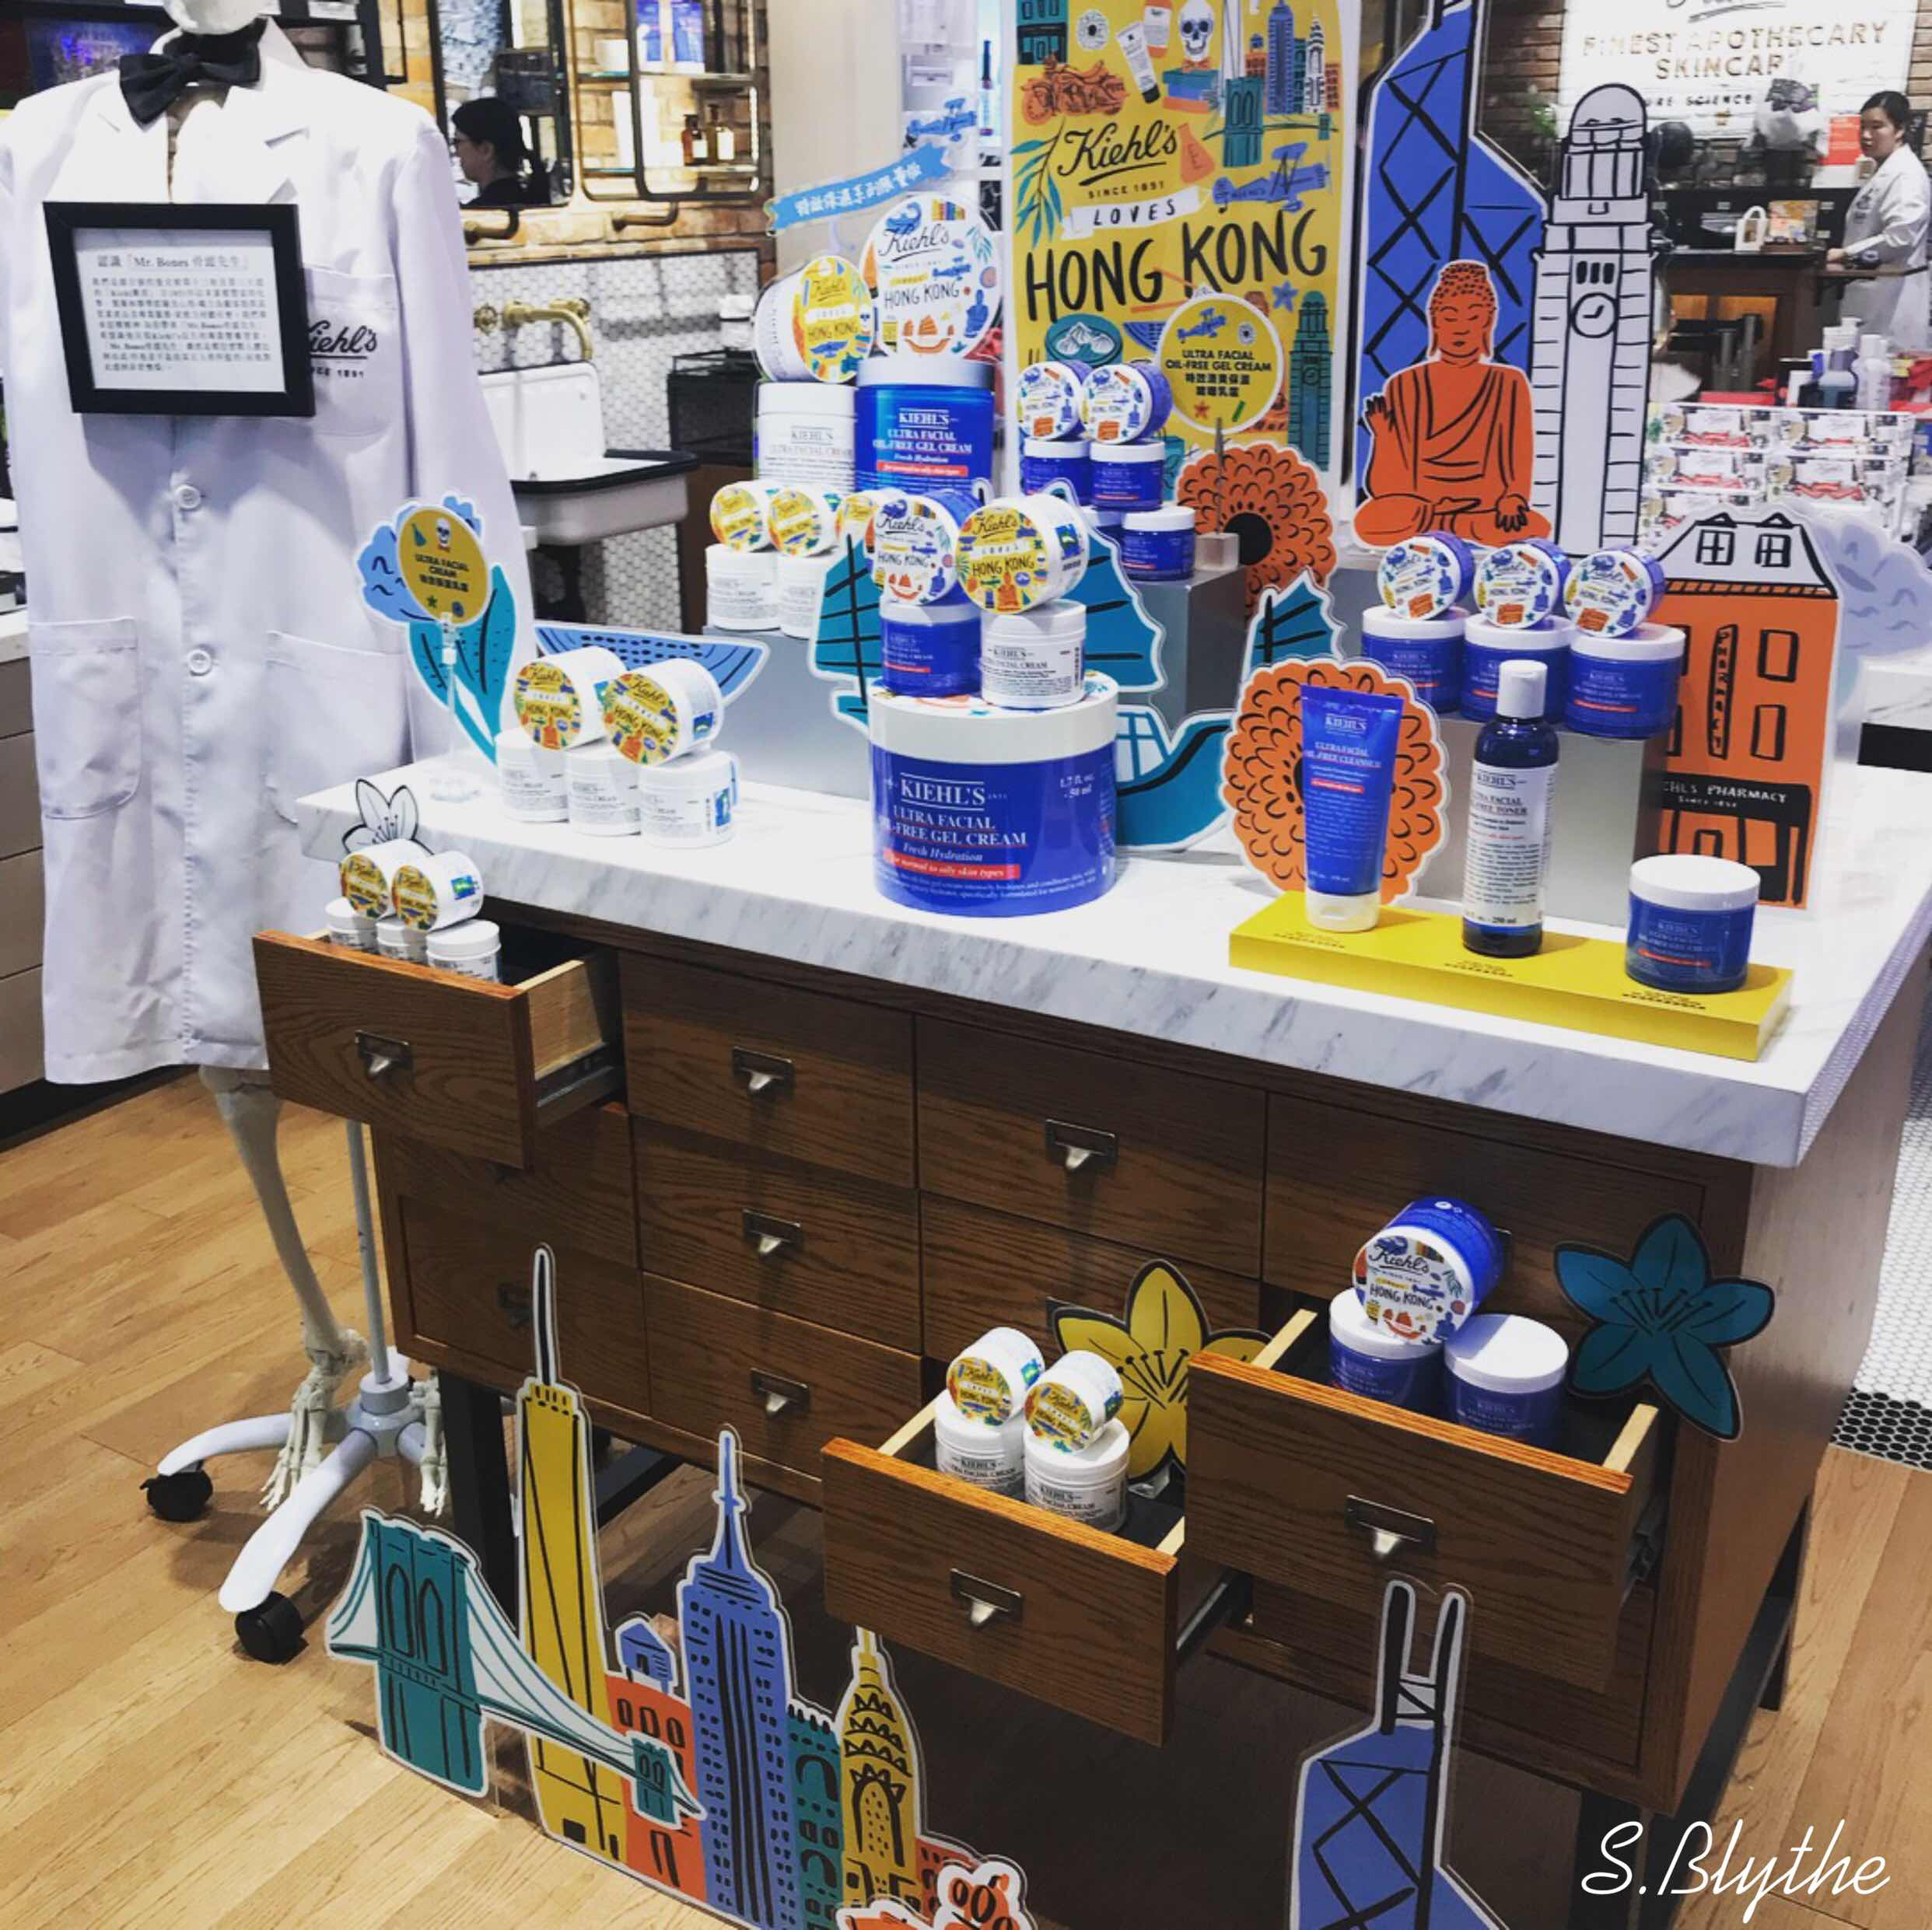 懷舊fun time,Kiehl's 愛香港Pop Up冰室 x Kiehl's Loves HK 限量版